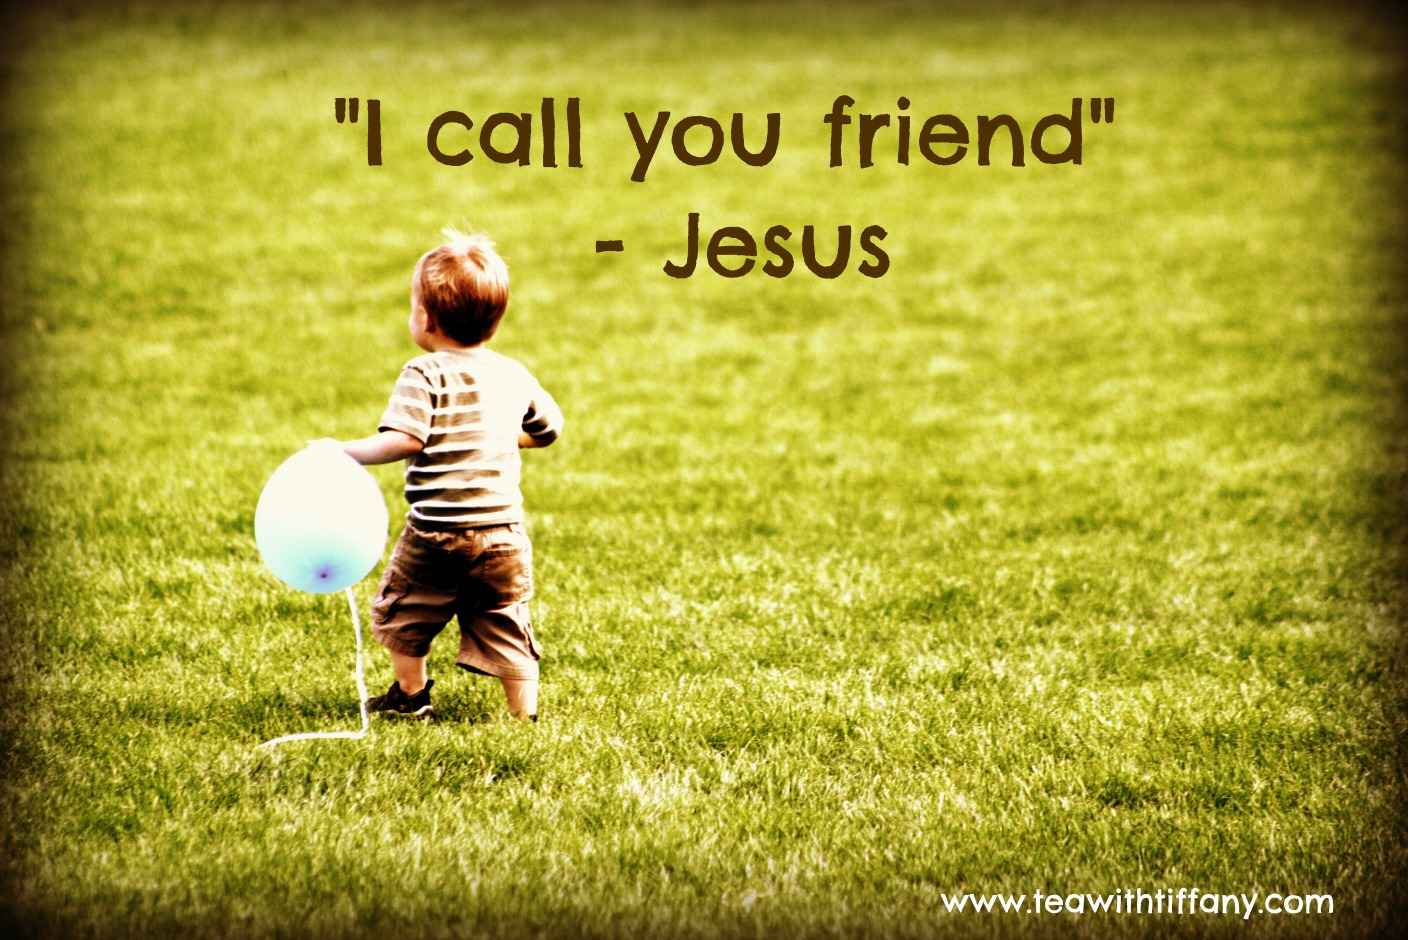 Call you friend jesus